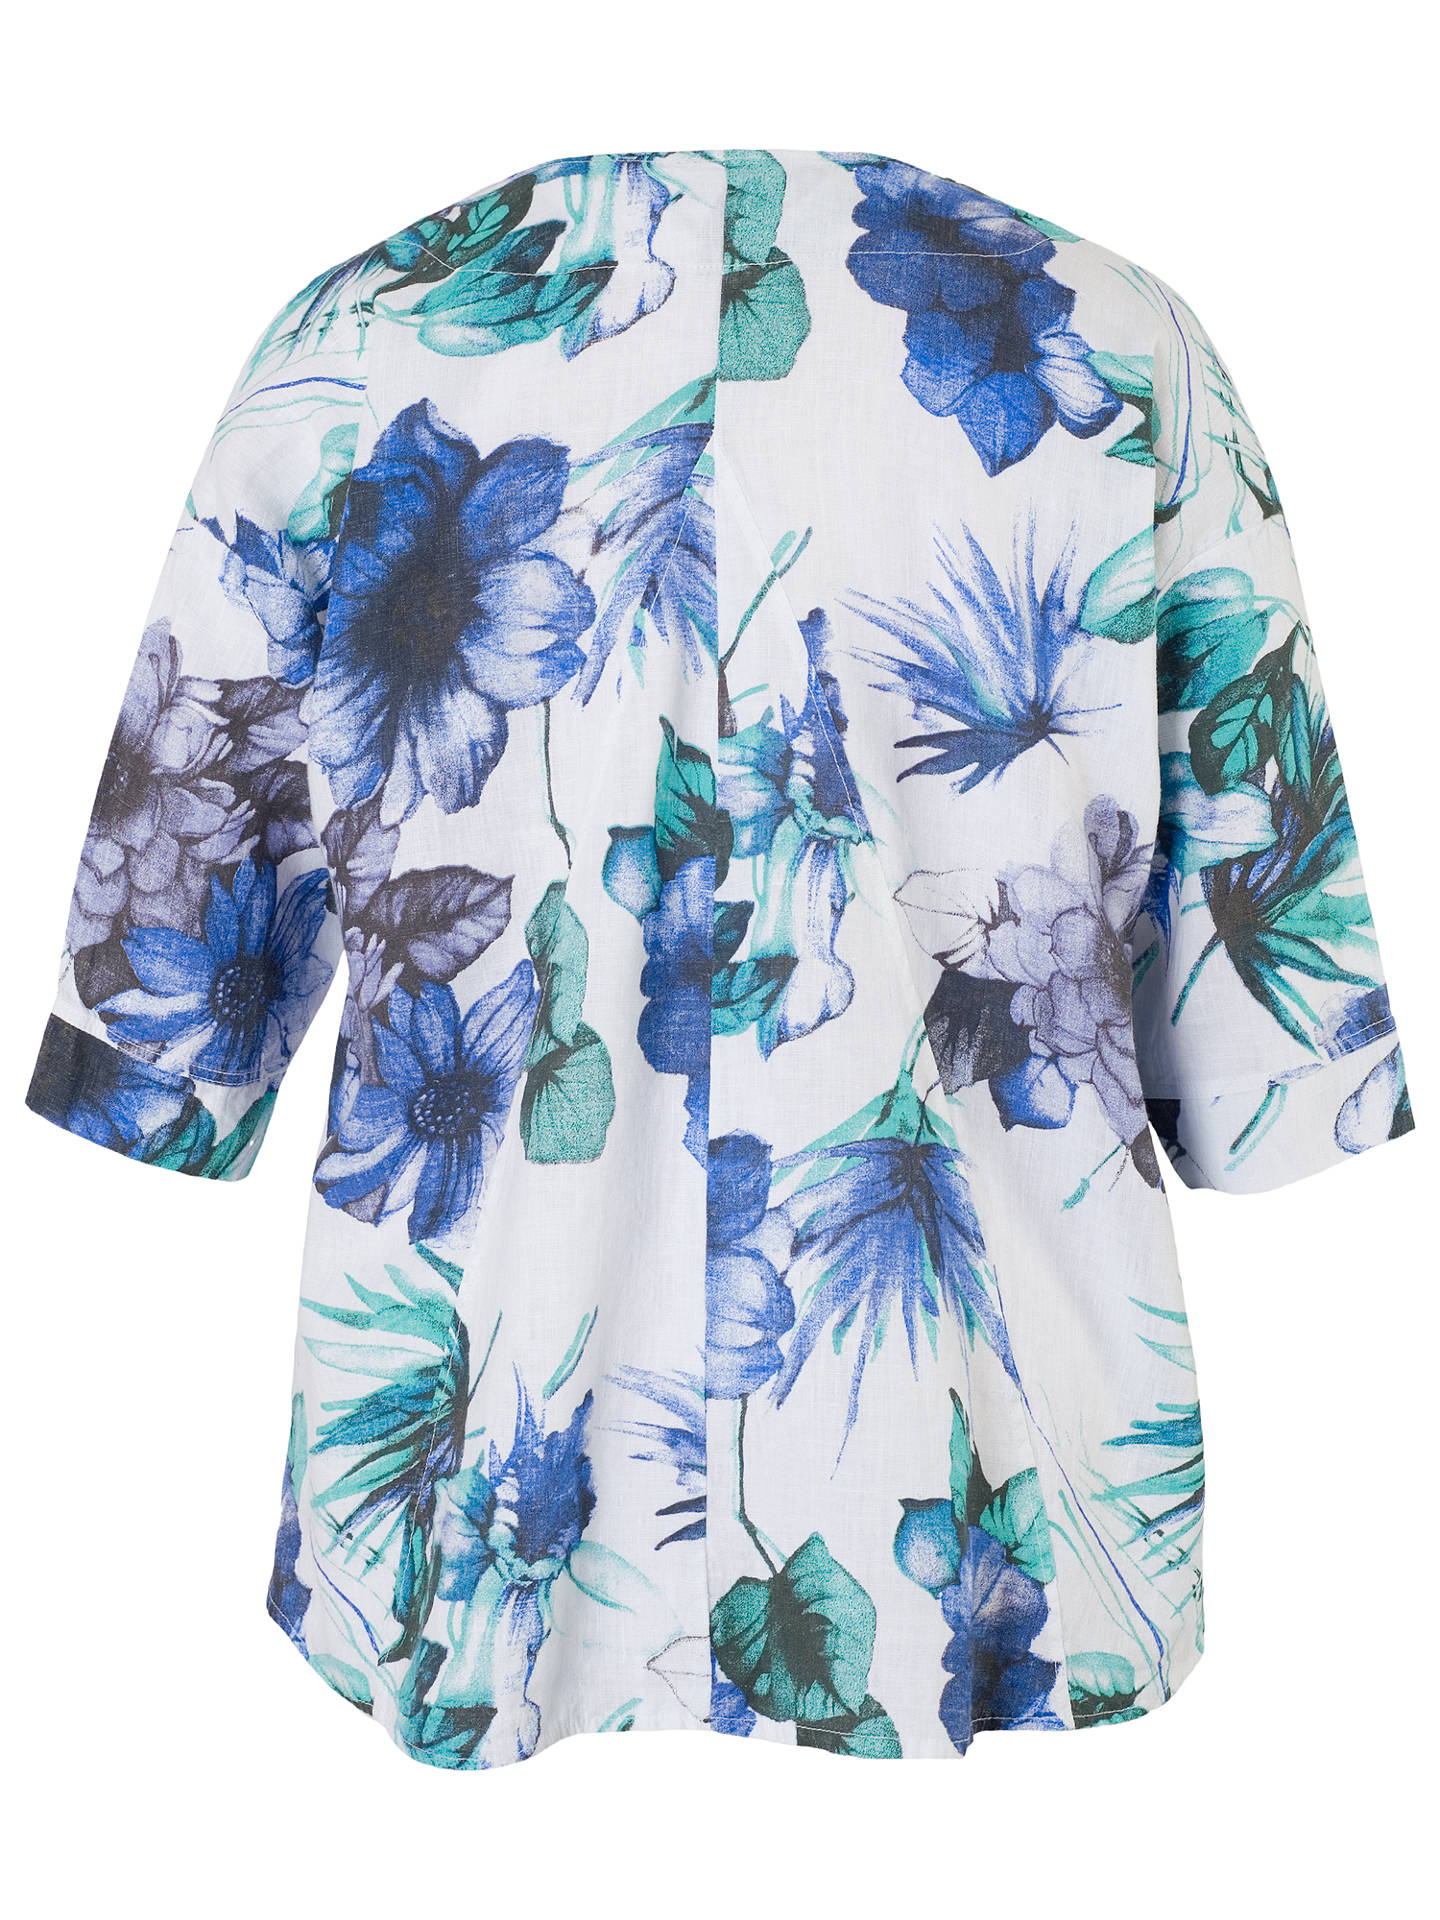 BuyChesca Print Linen Jacket, White/Blue, 12-14 Online at johnlewis.com